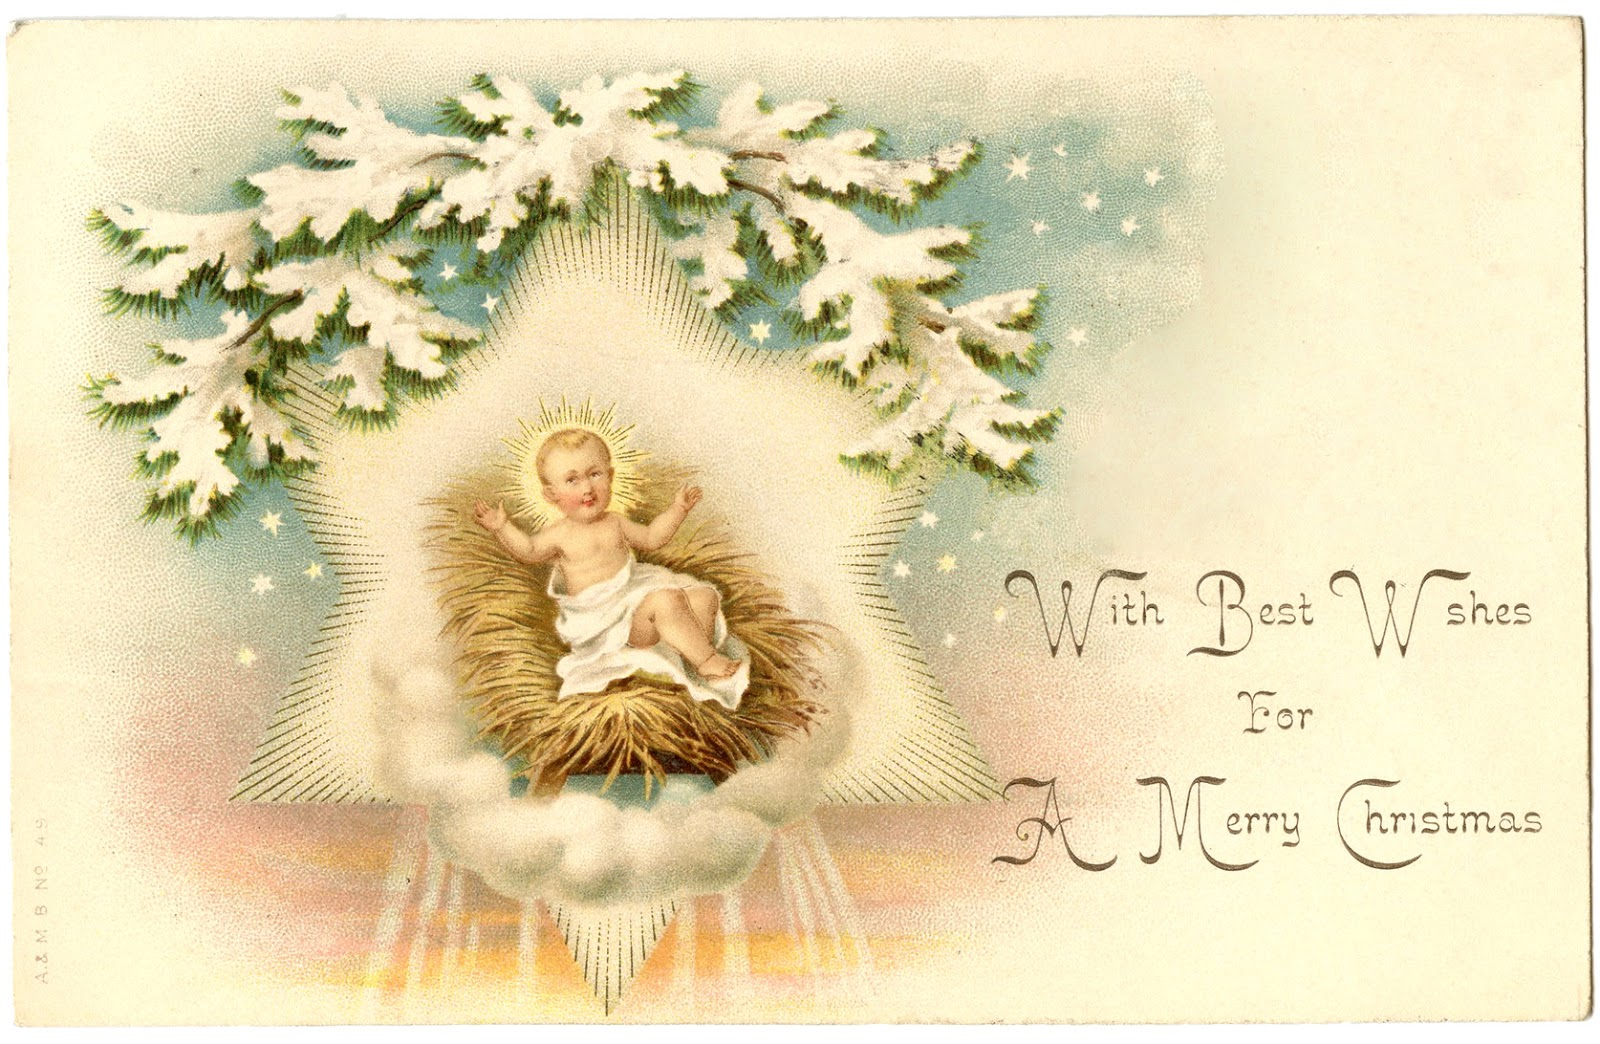 vintage christmas image beautiful jesus in manger the graphics